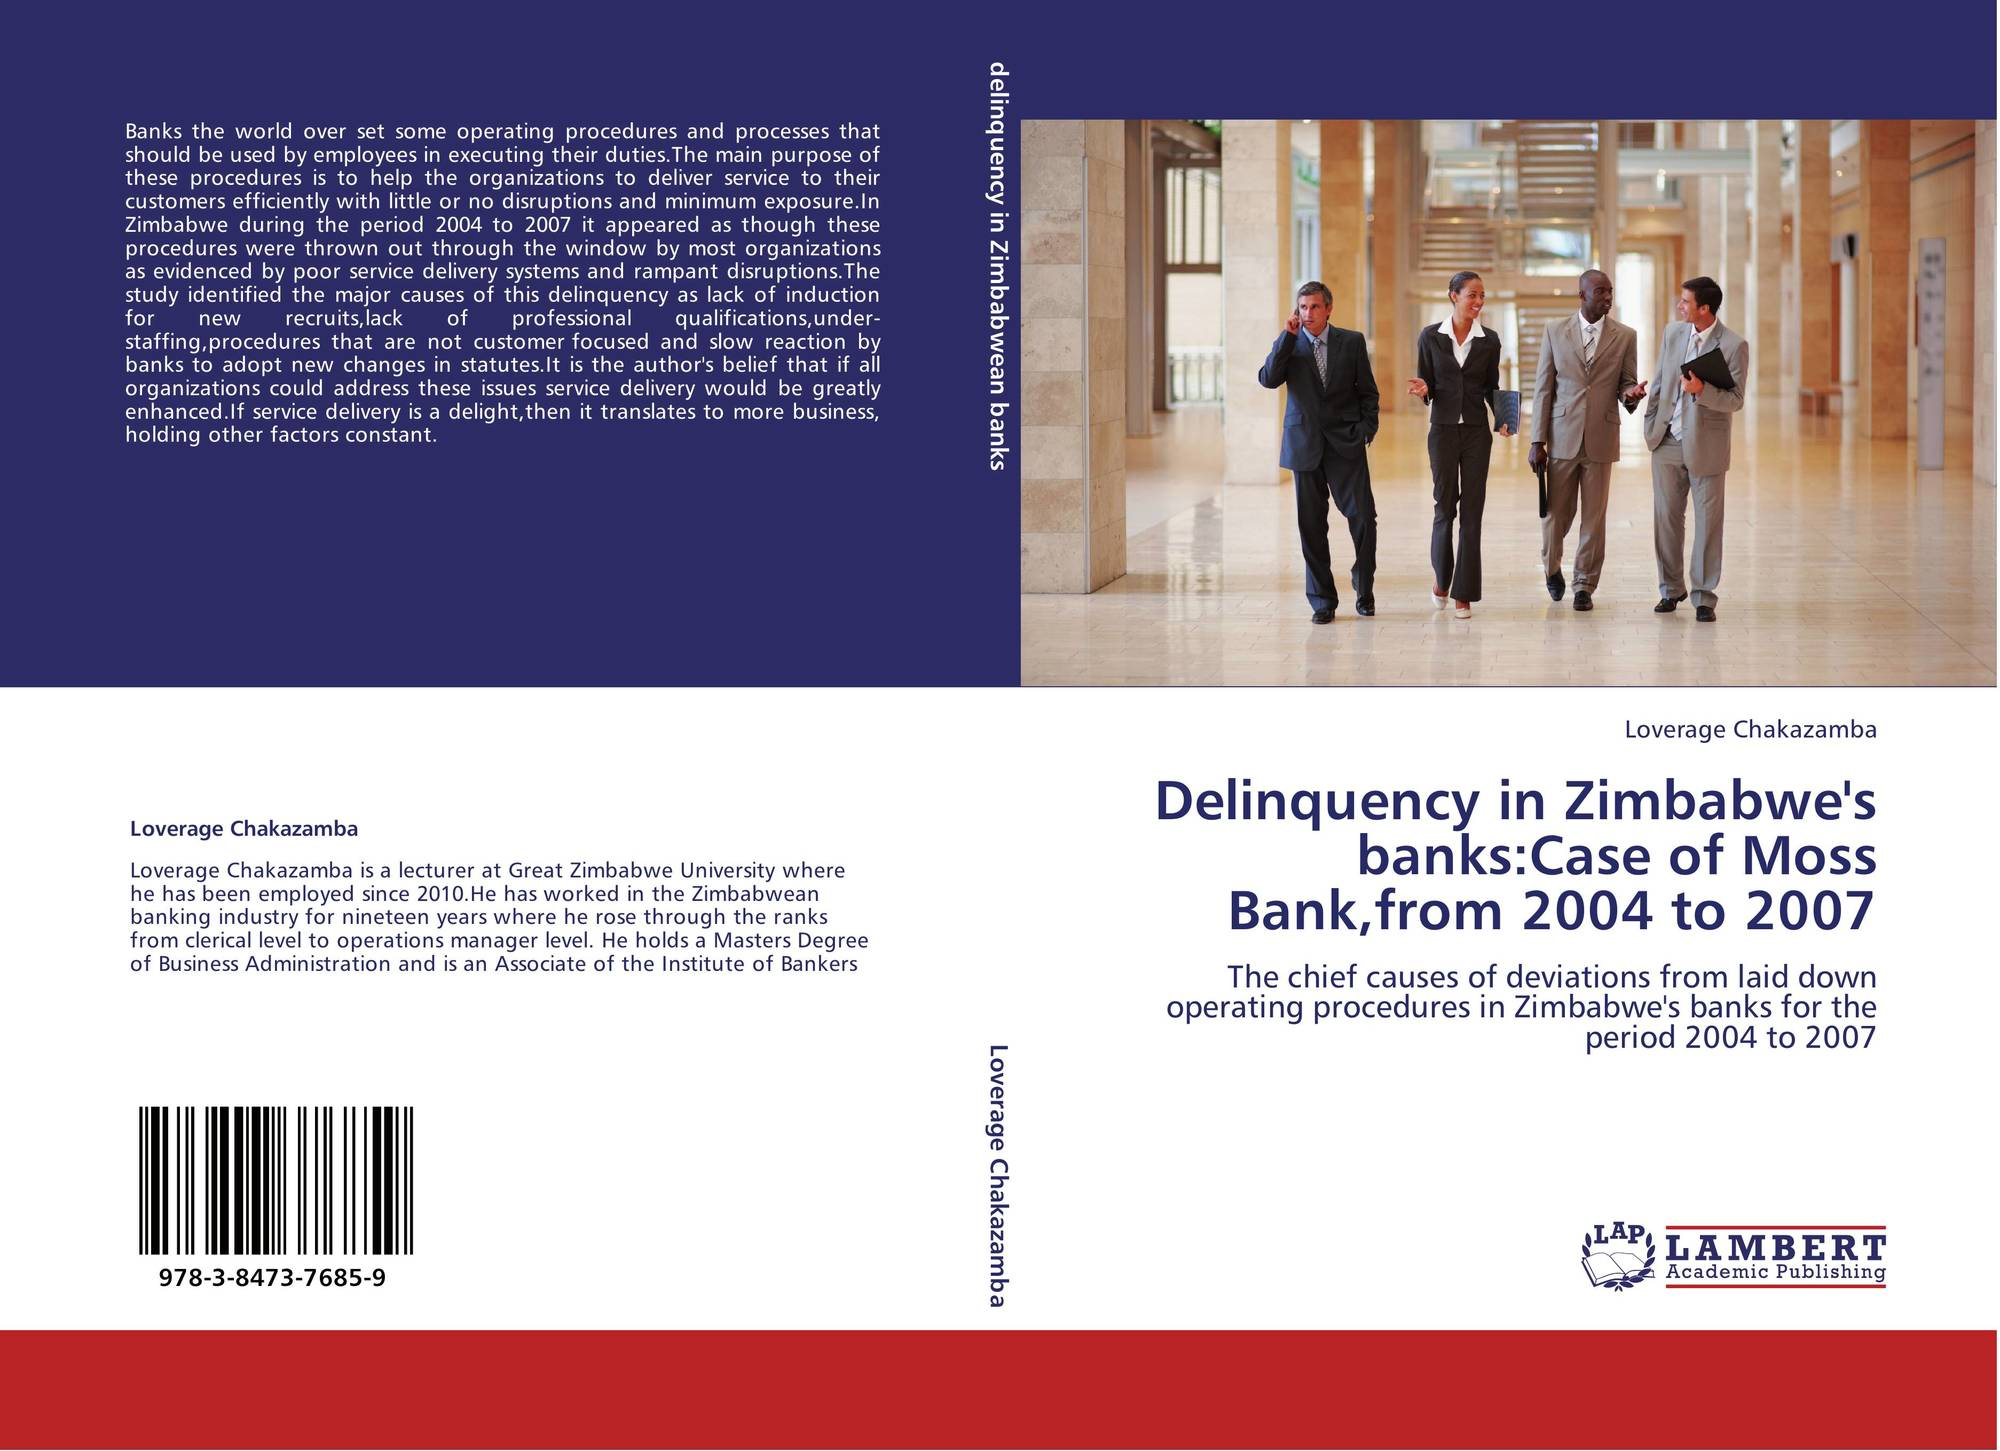 Delinquency in Zimbabwe's banks:Case of Moss Bank,from 2004